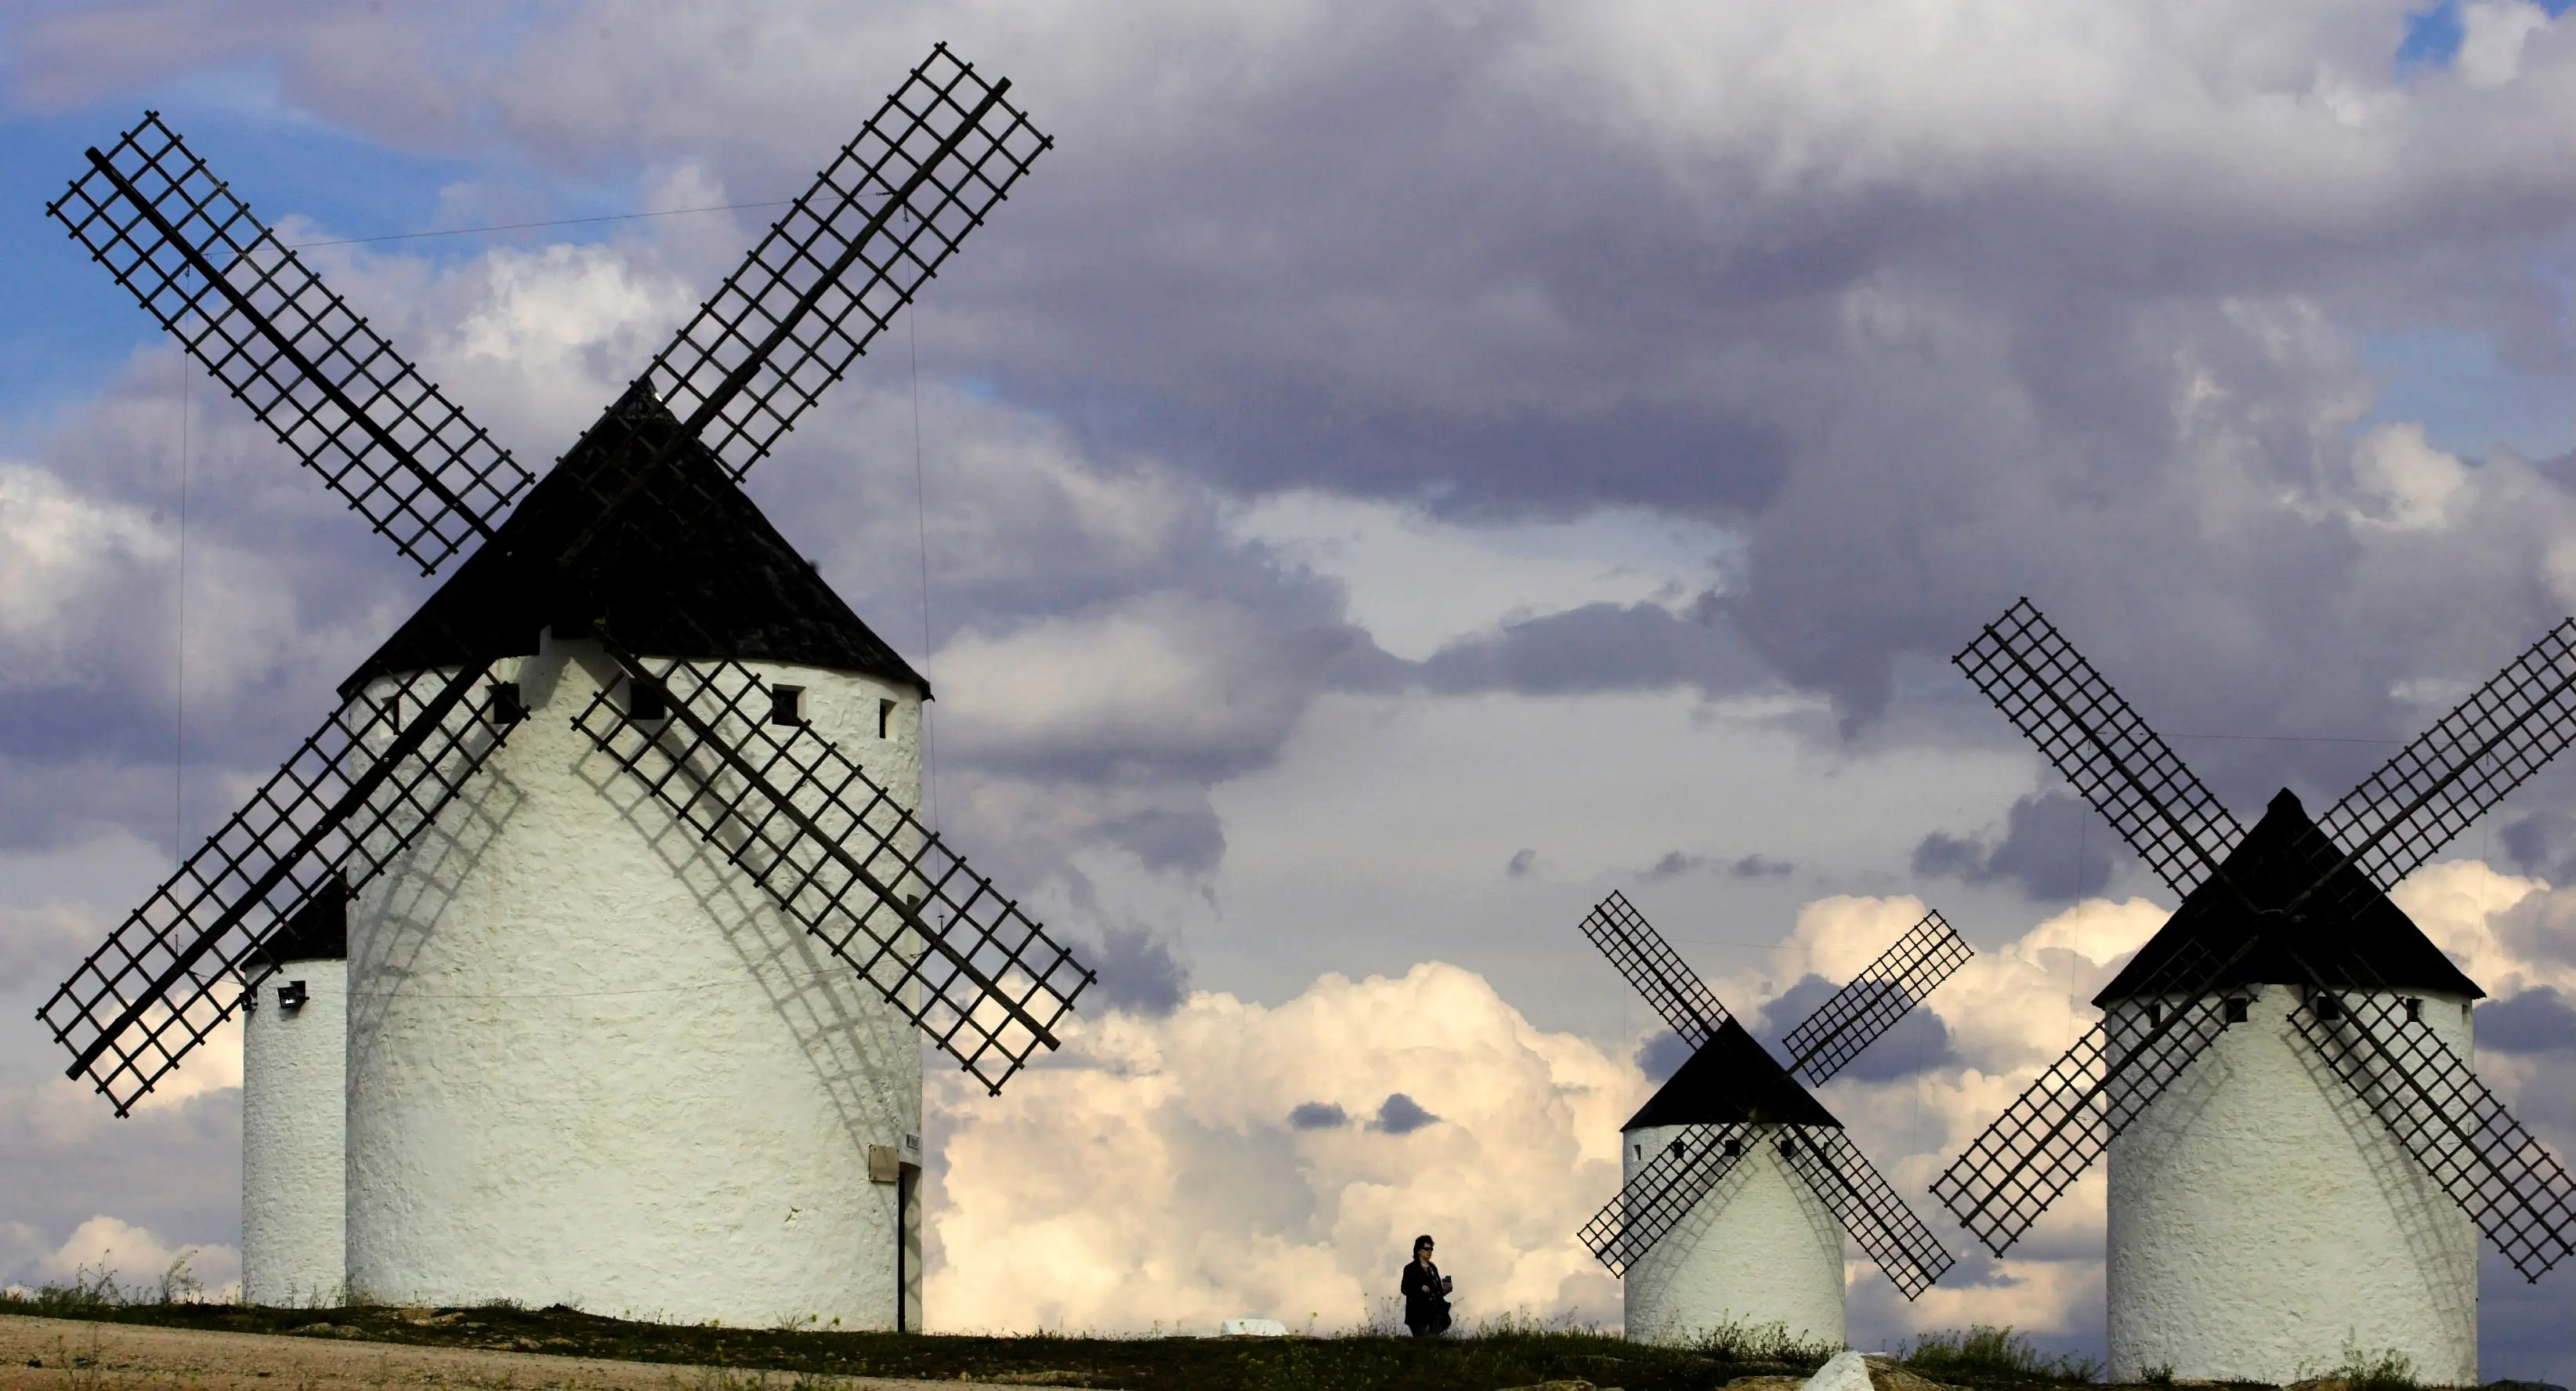 Tourists visit the famous ancient windmills in central Spain.